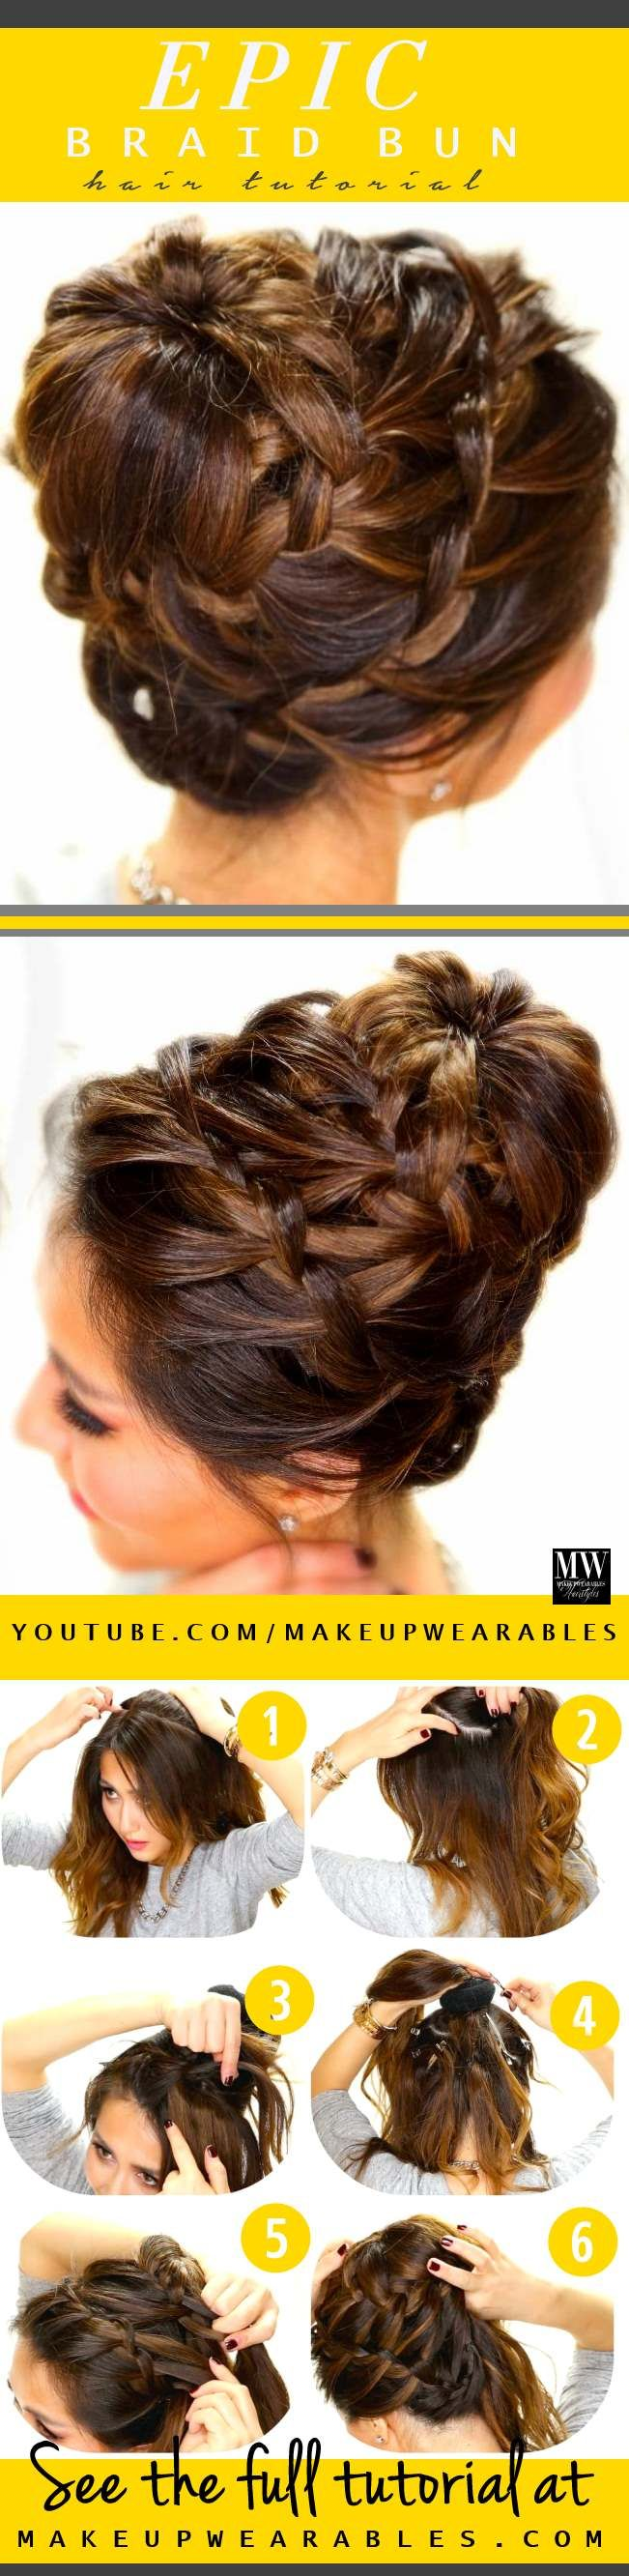 best images about homecoming hairstyles on pinterest updo